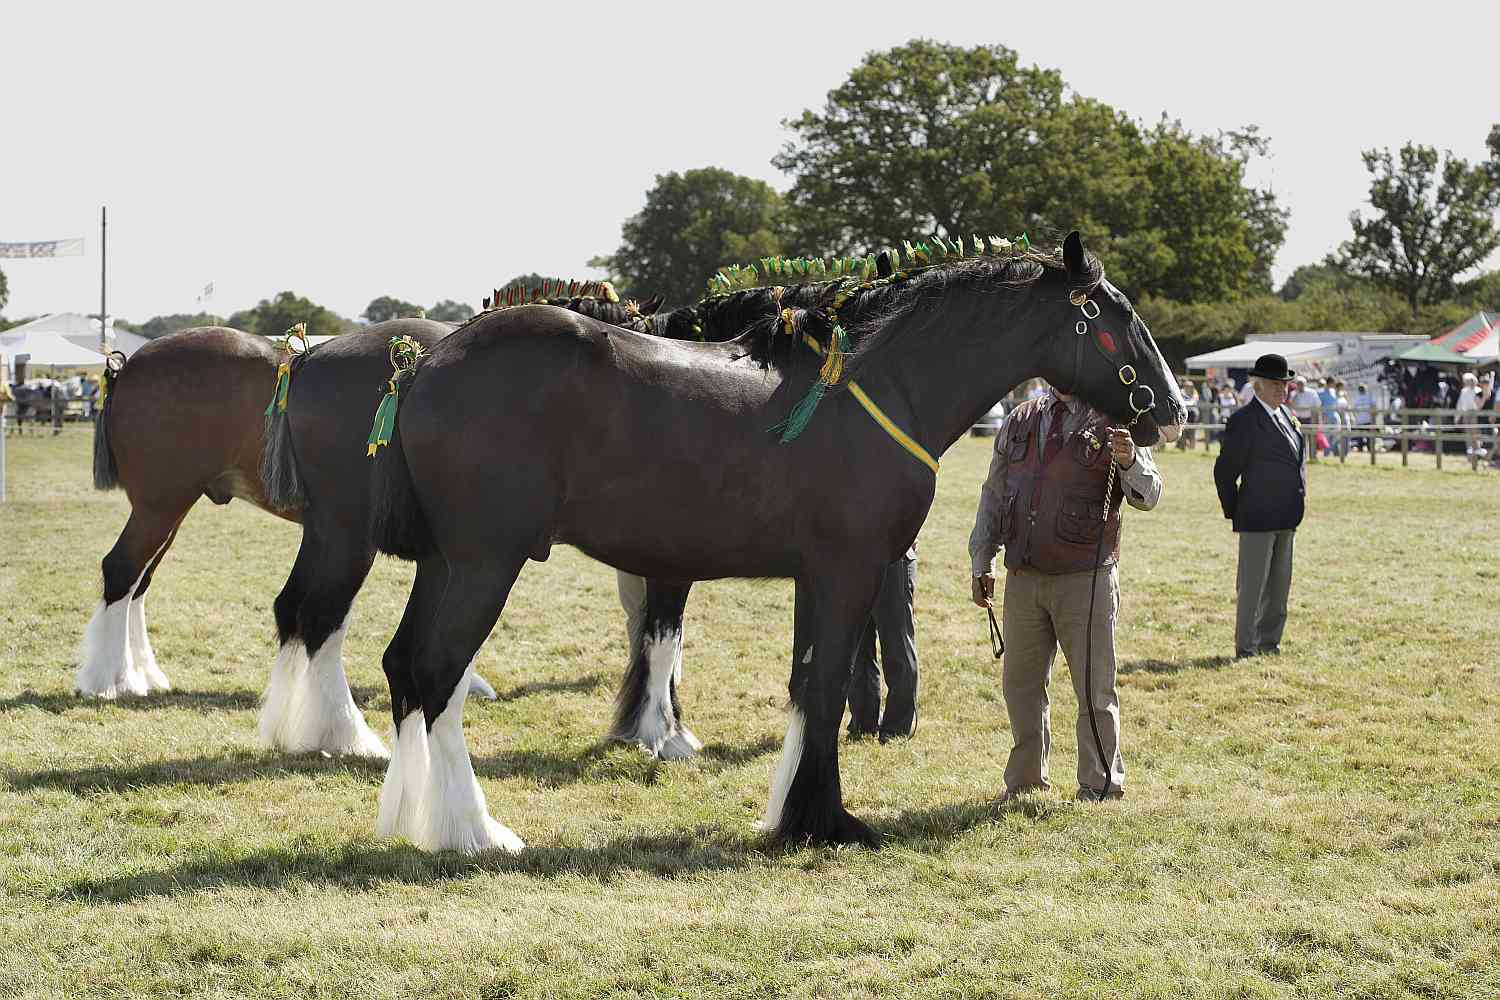 Shire horses outside with handlers